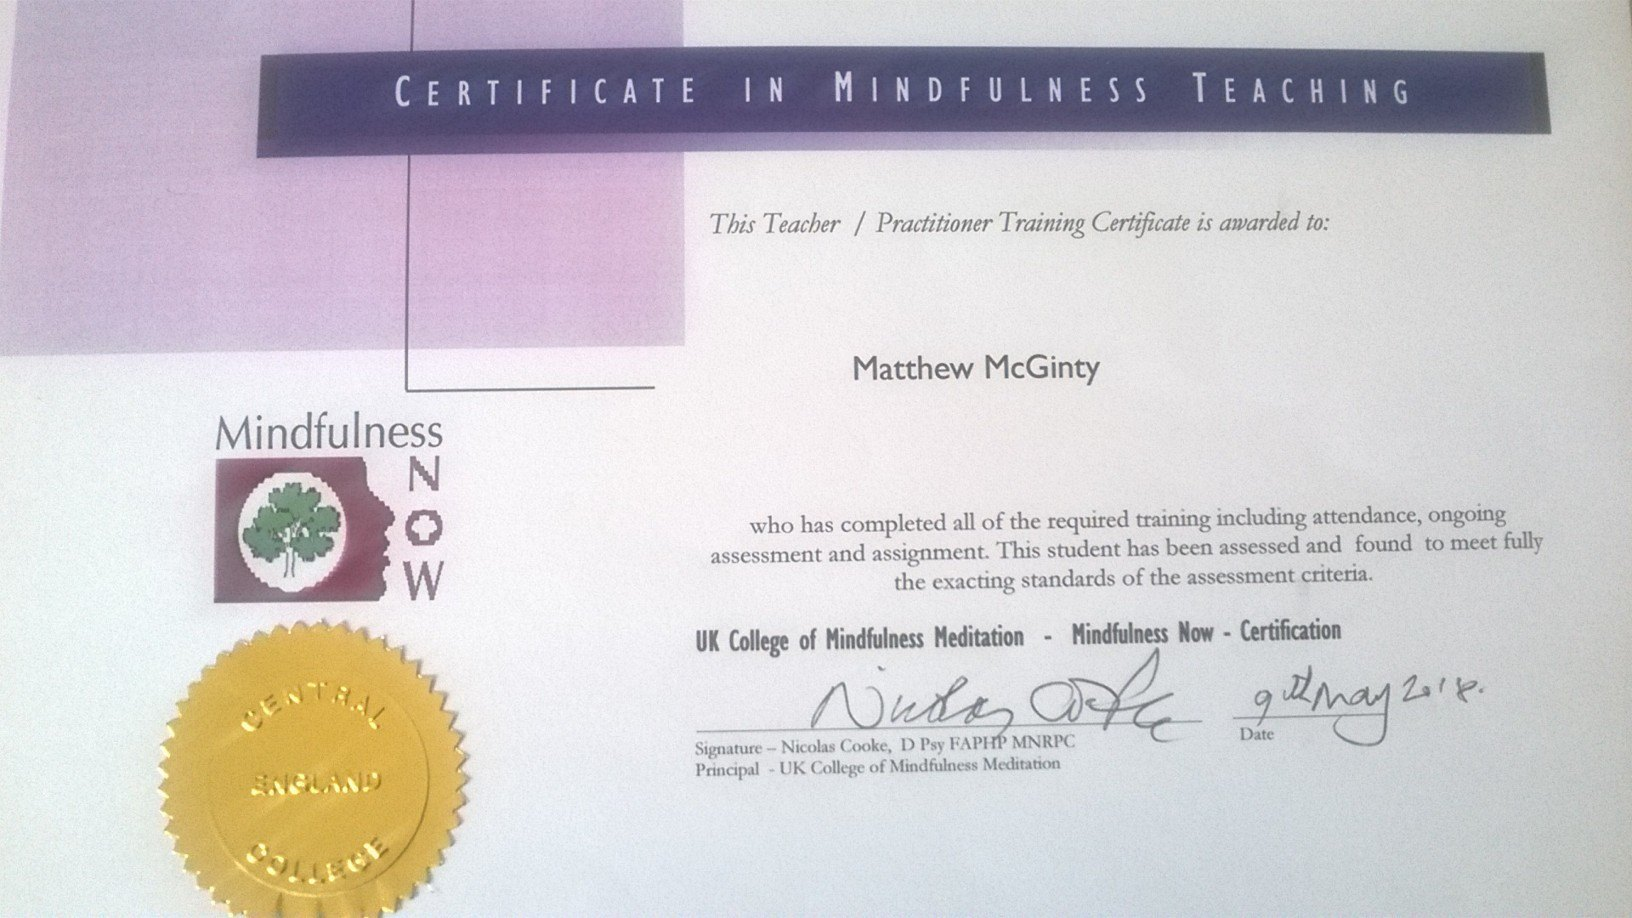 My Mindfulness Teacher Training Certificate from the UK College of Mindfulness Medititation